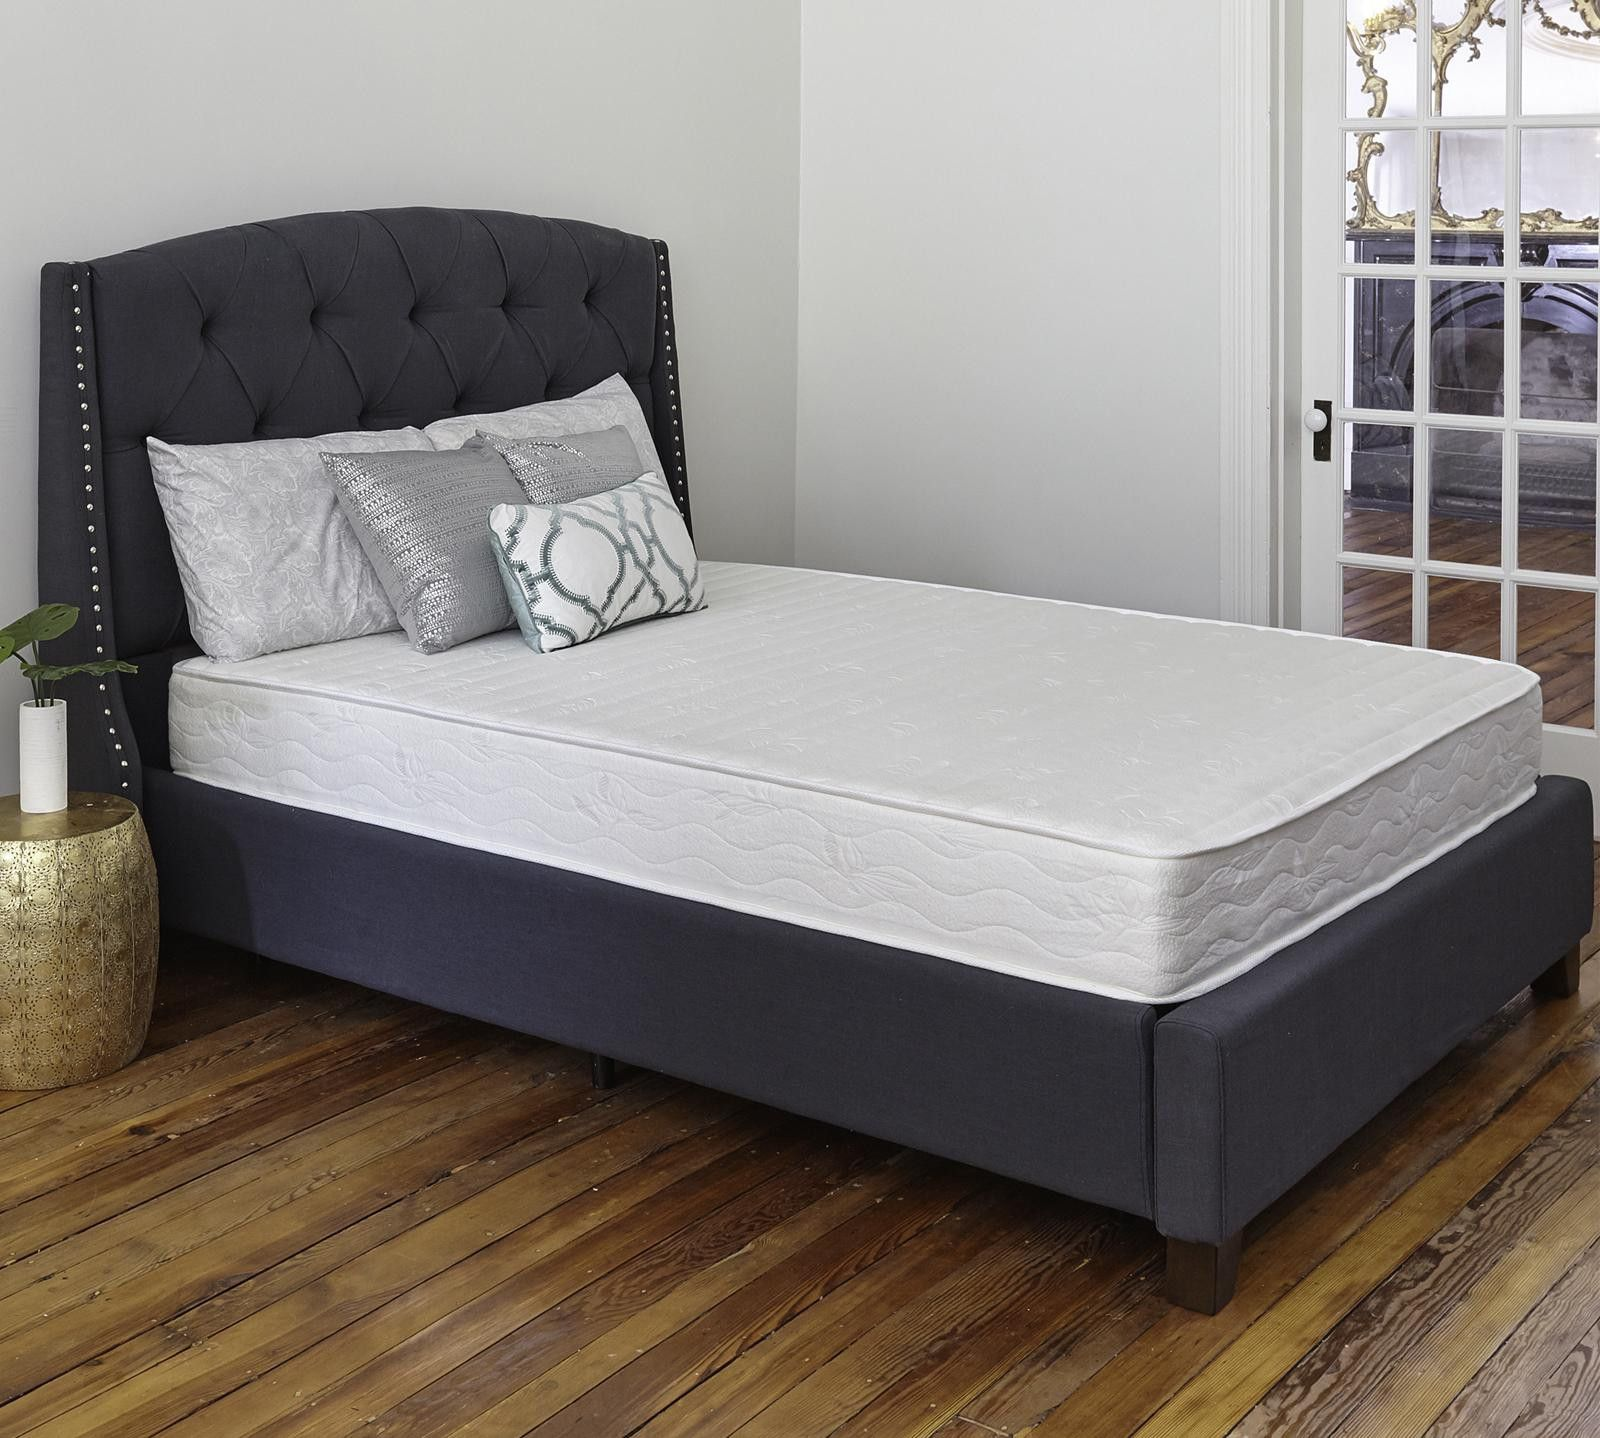 30 Breathtaking Mattress Firm Queen Bed Frame Ideas With Images